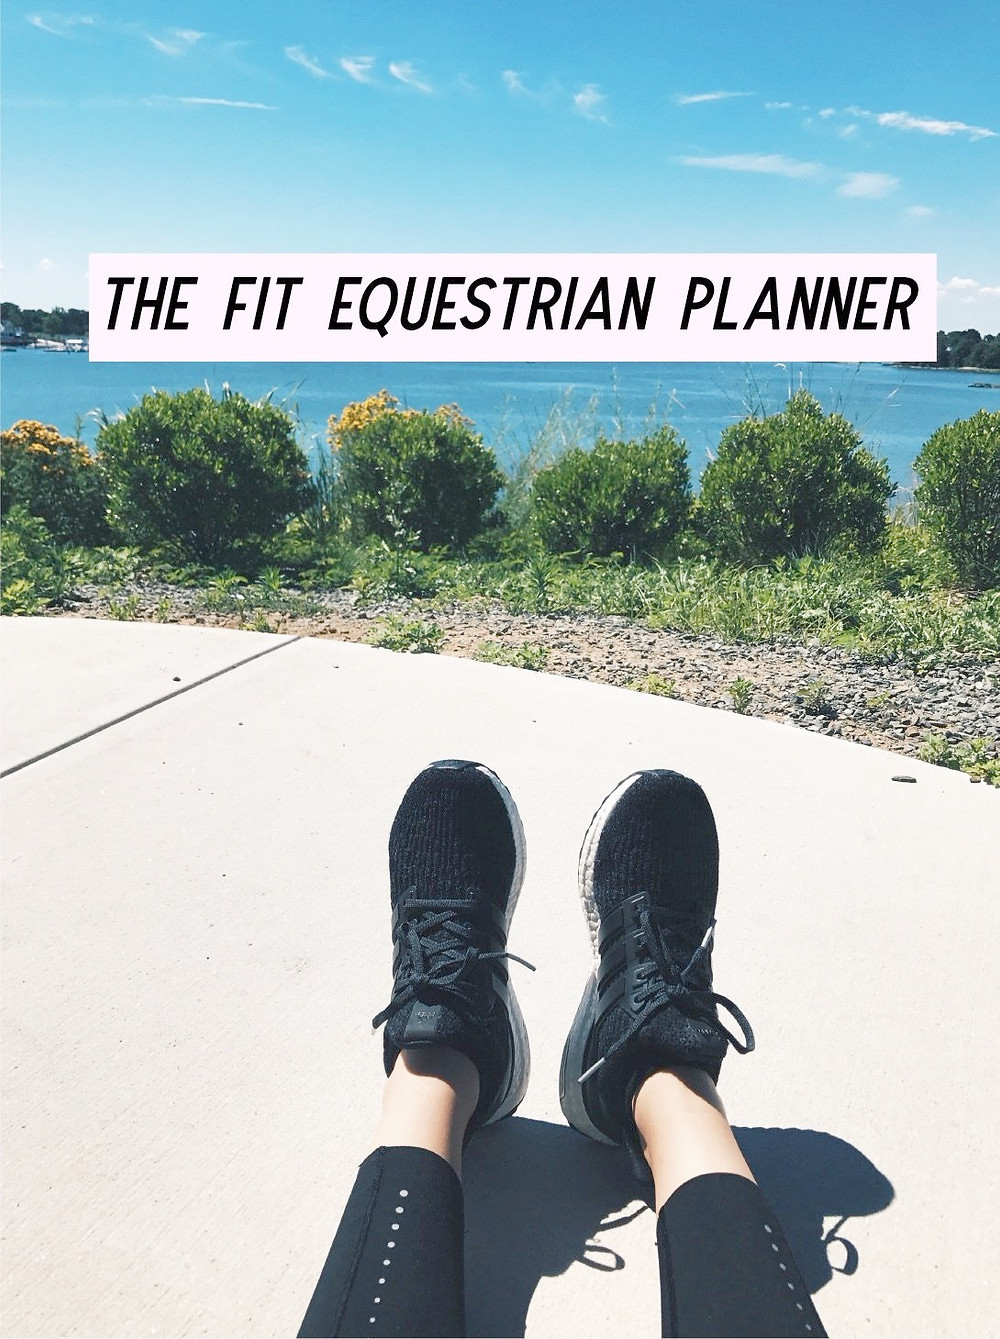 The Fit Equestrian and Life Equestrian